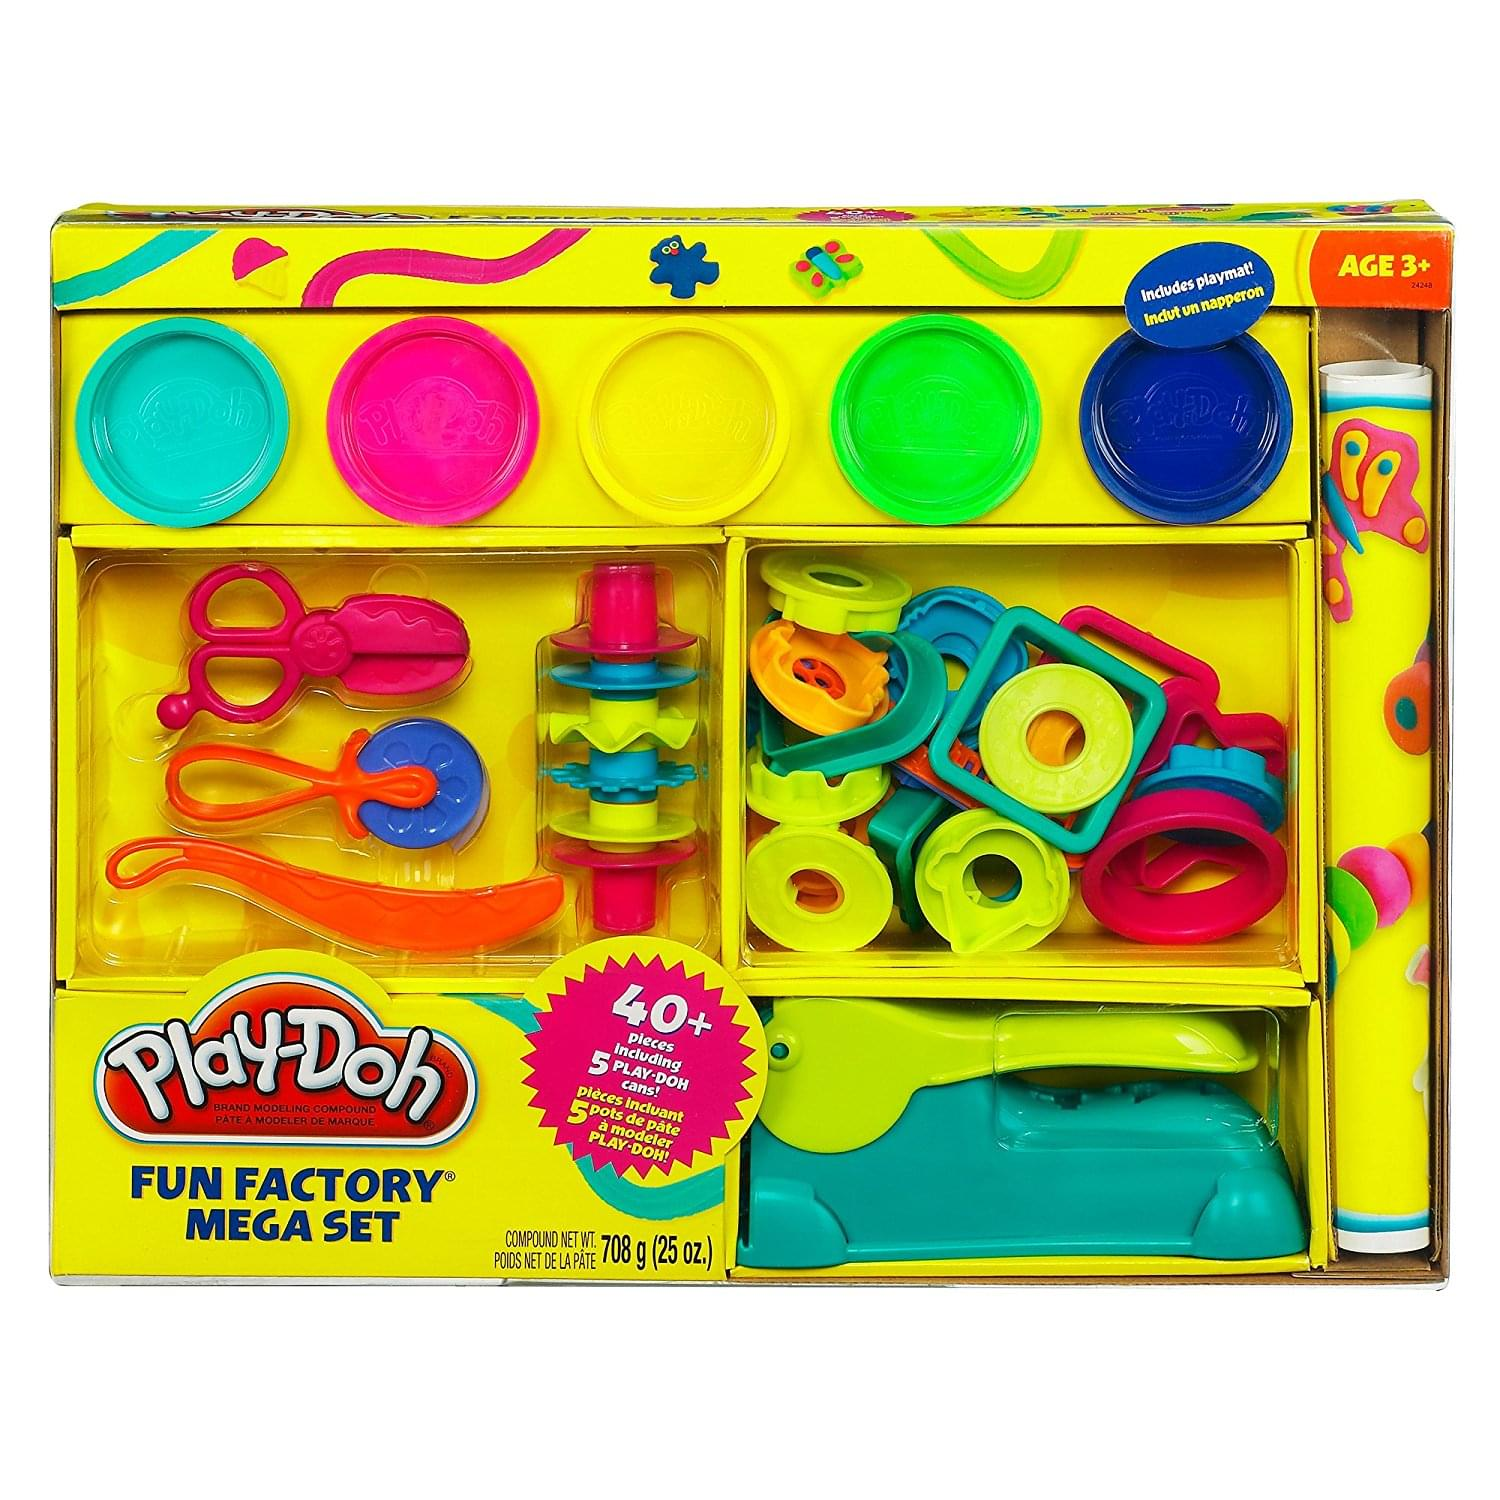 Discontinued Play-Doh Fun Factory Mega Set